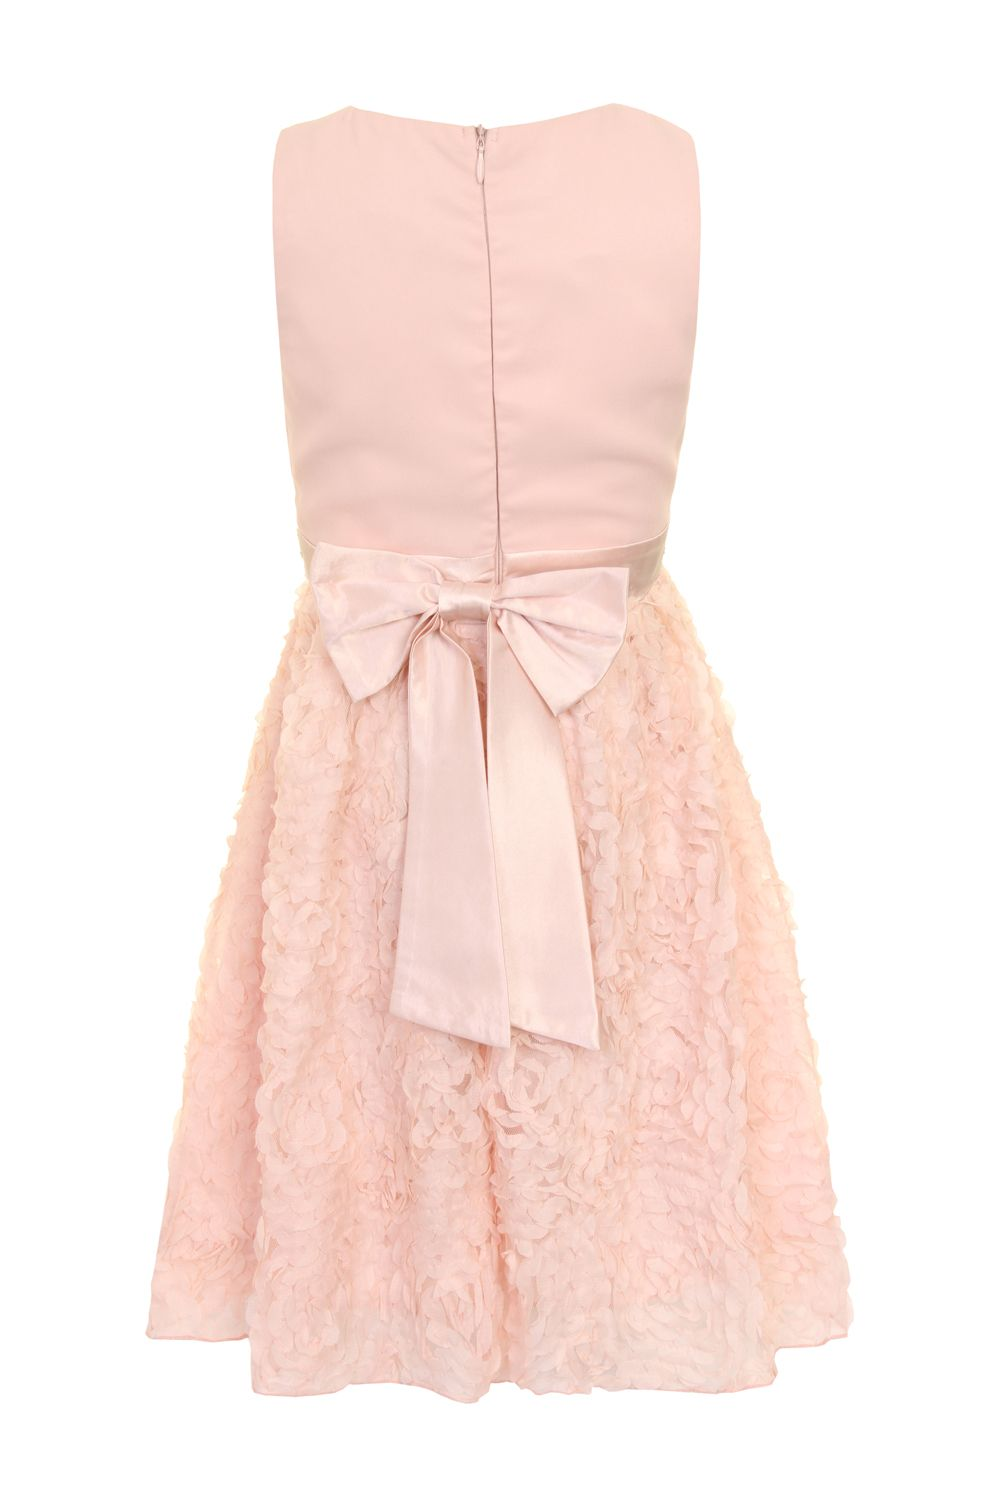 Girls ruffle dress with beaded waistband